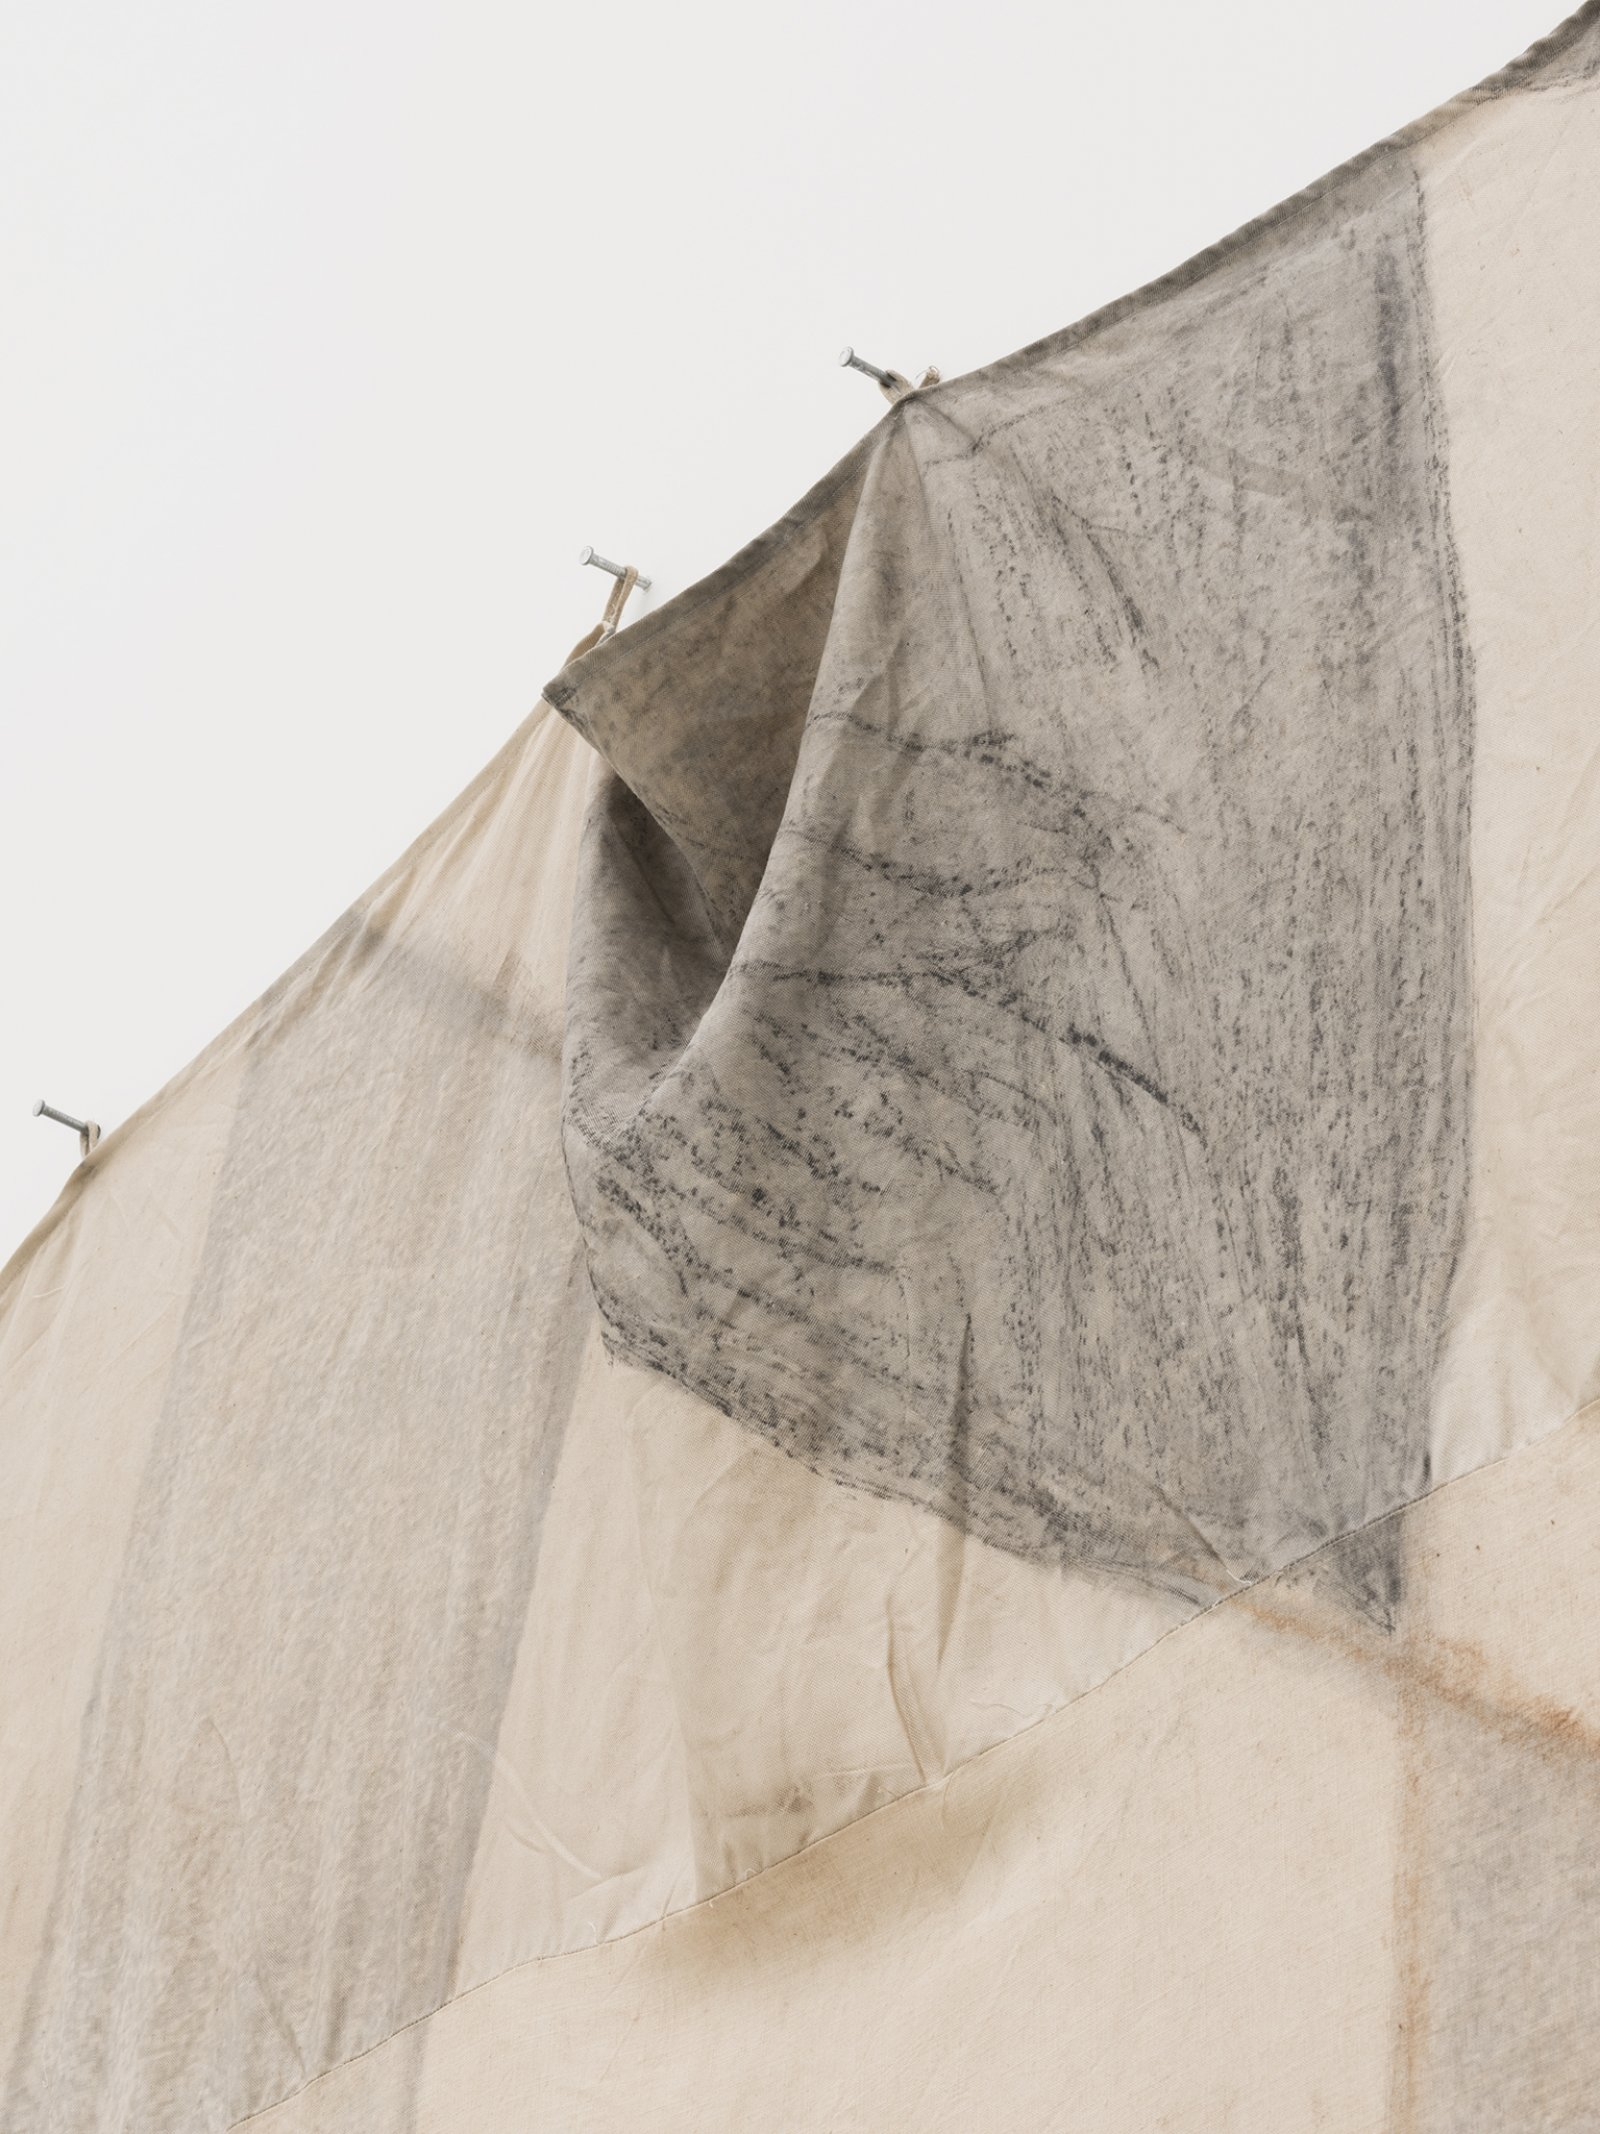 Duane Linklater, Tipi cover for unknown future horizon / Indian lemonade diamond for Mina (detail), 2018, digital print on hand-dyed linen, cedar, sumac, charcoal, nails, 113 x 213 in. (287 x 541 cm)